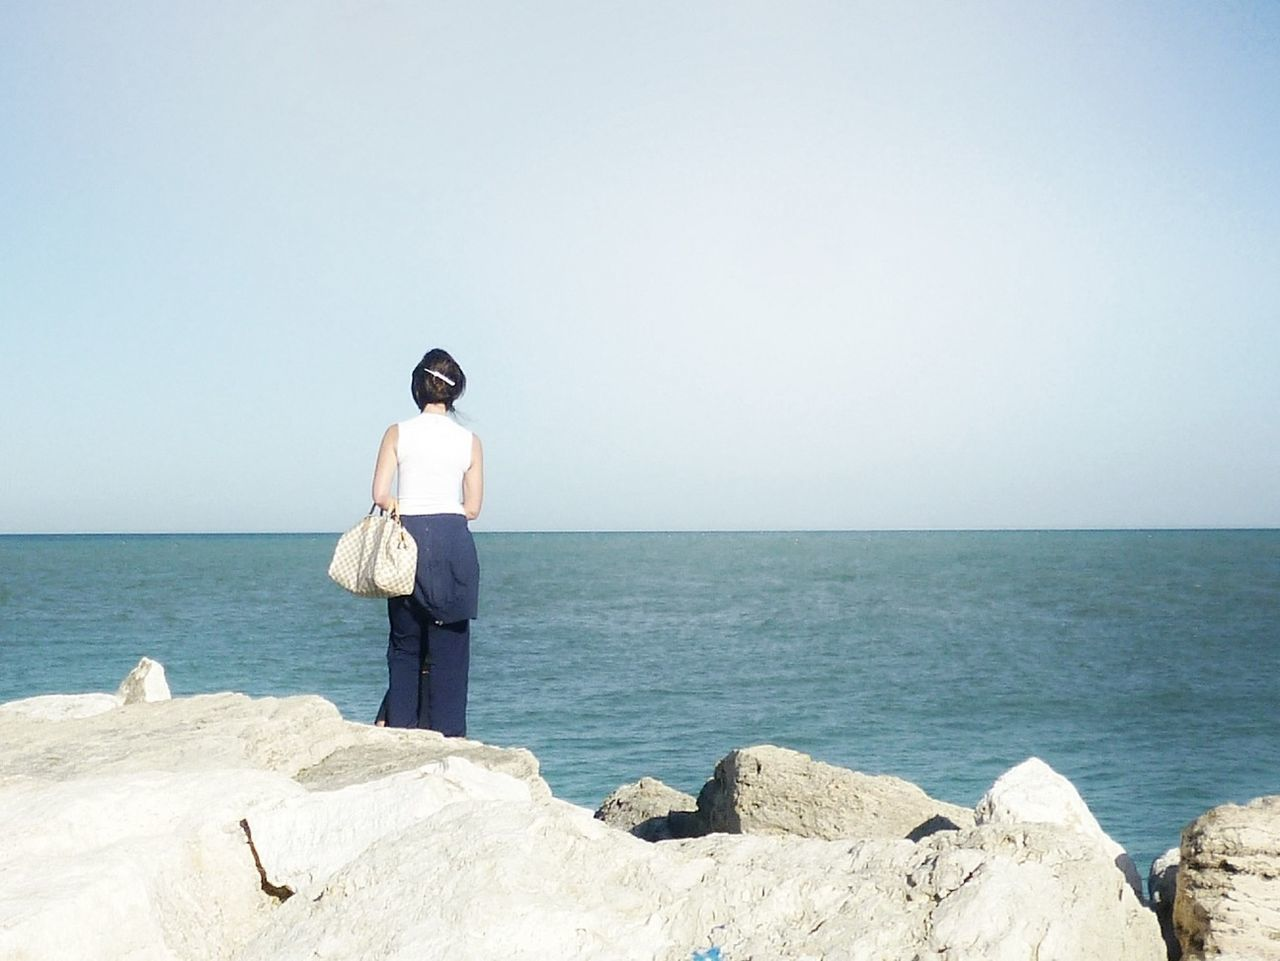 Rear view of woman standing at rocky shore against clear sky